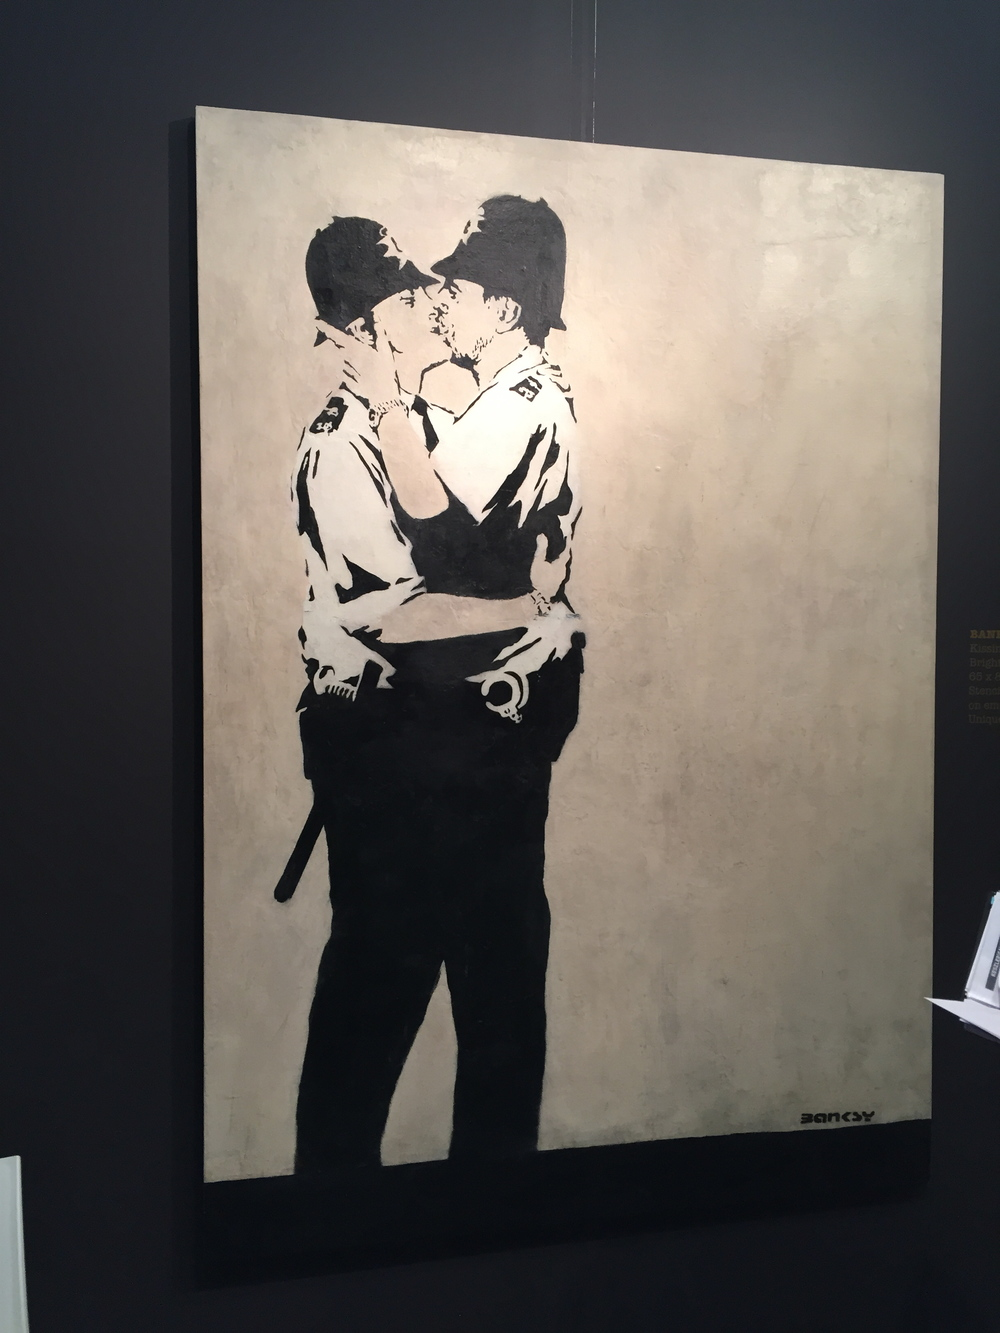 Cops Kissing - Banksy